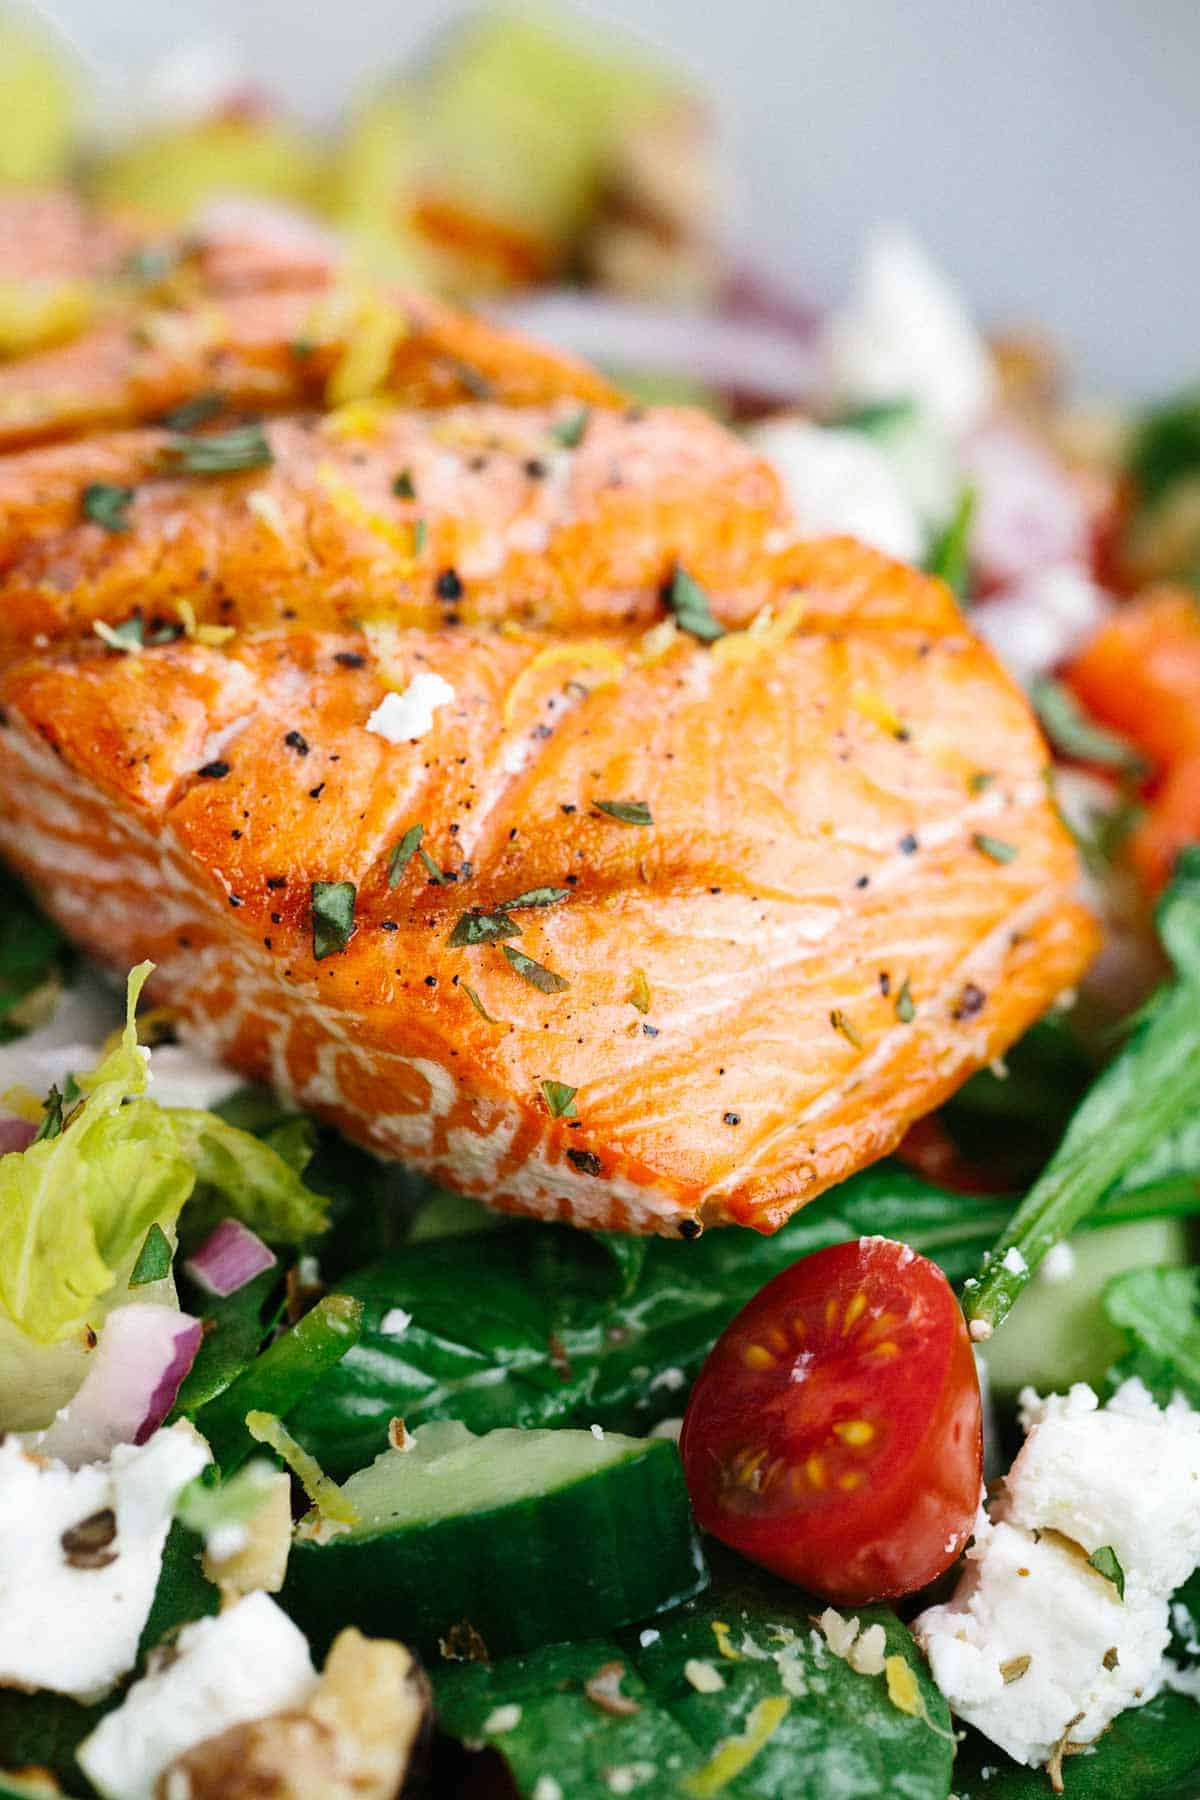 Salmon fillet placed on a bed of lettuce and tomatoes